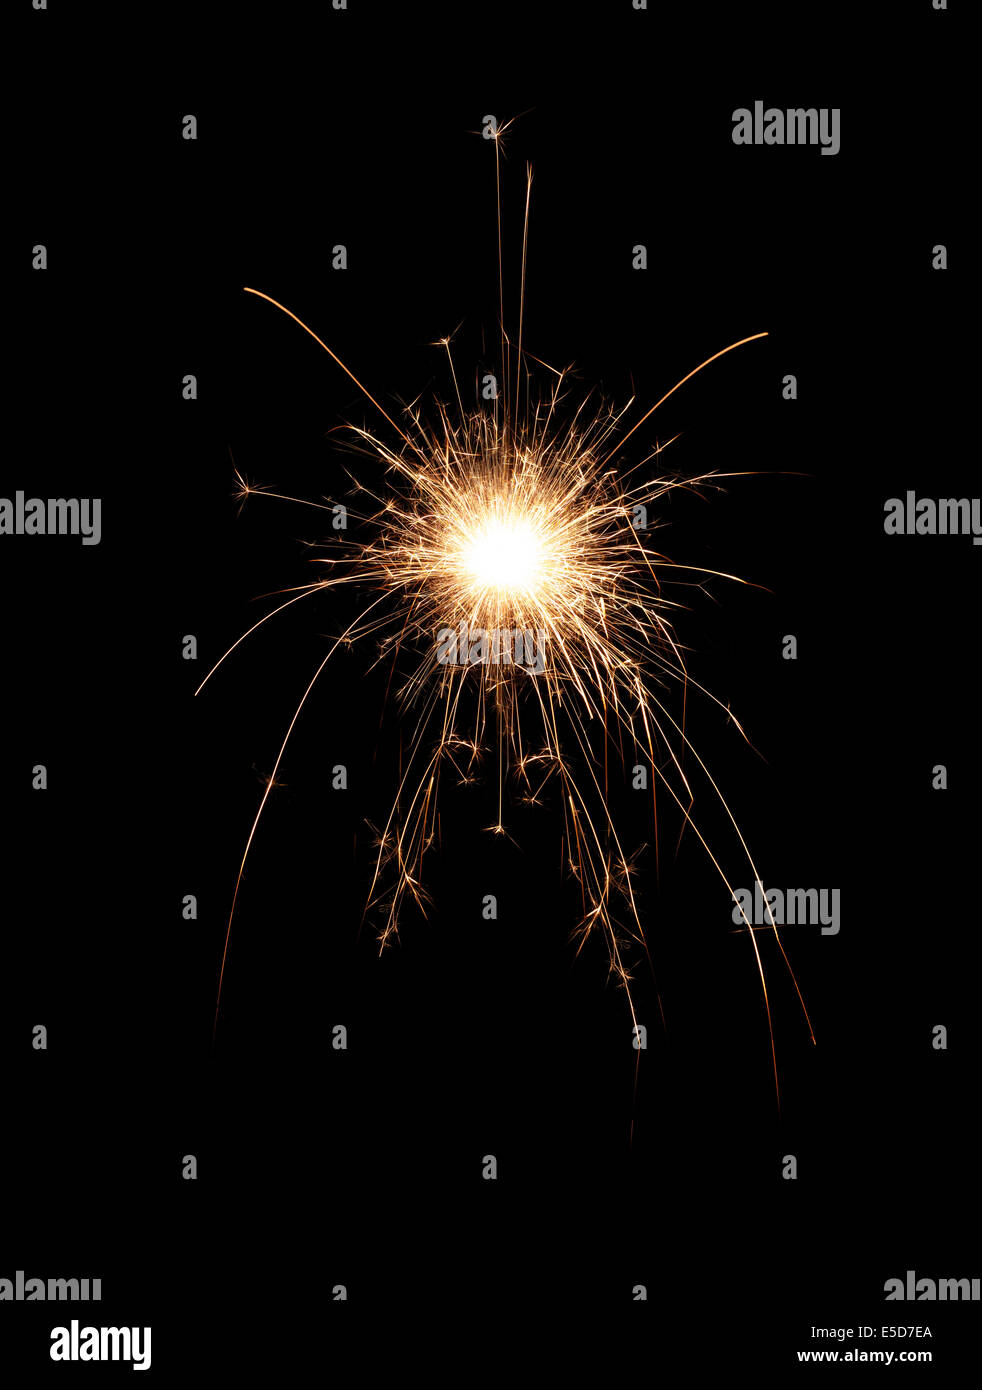 A spark on a black background - Stock Image